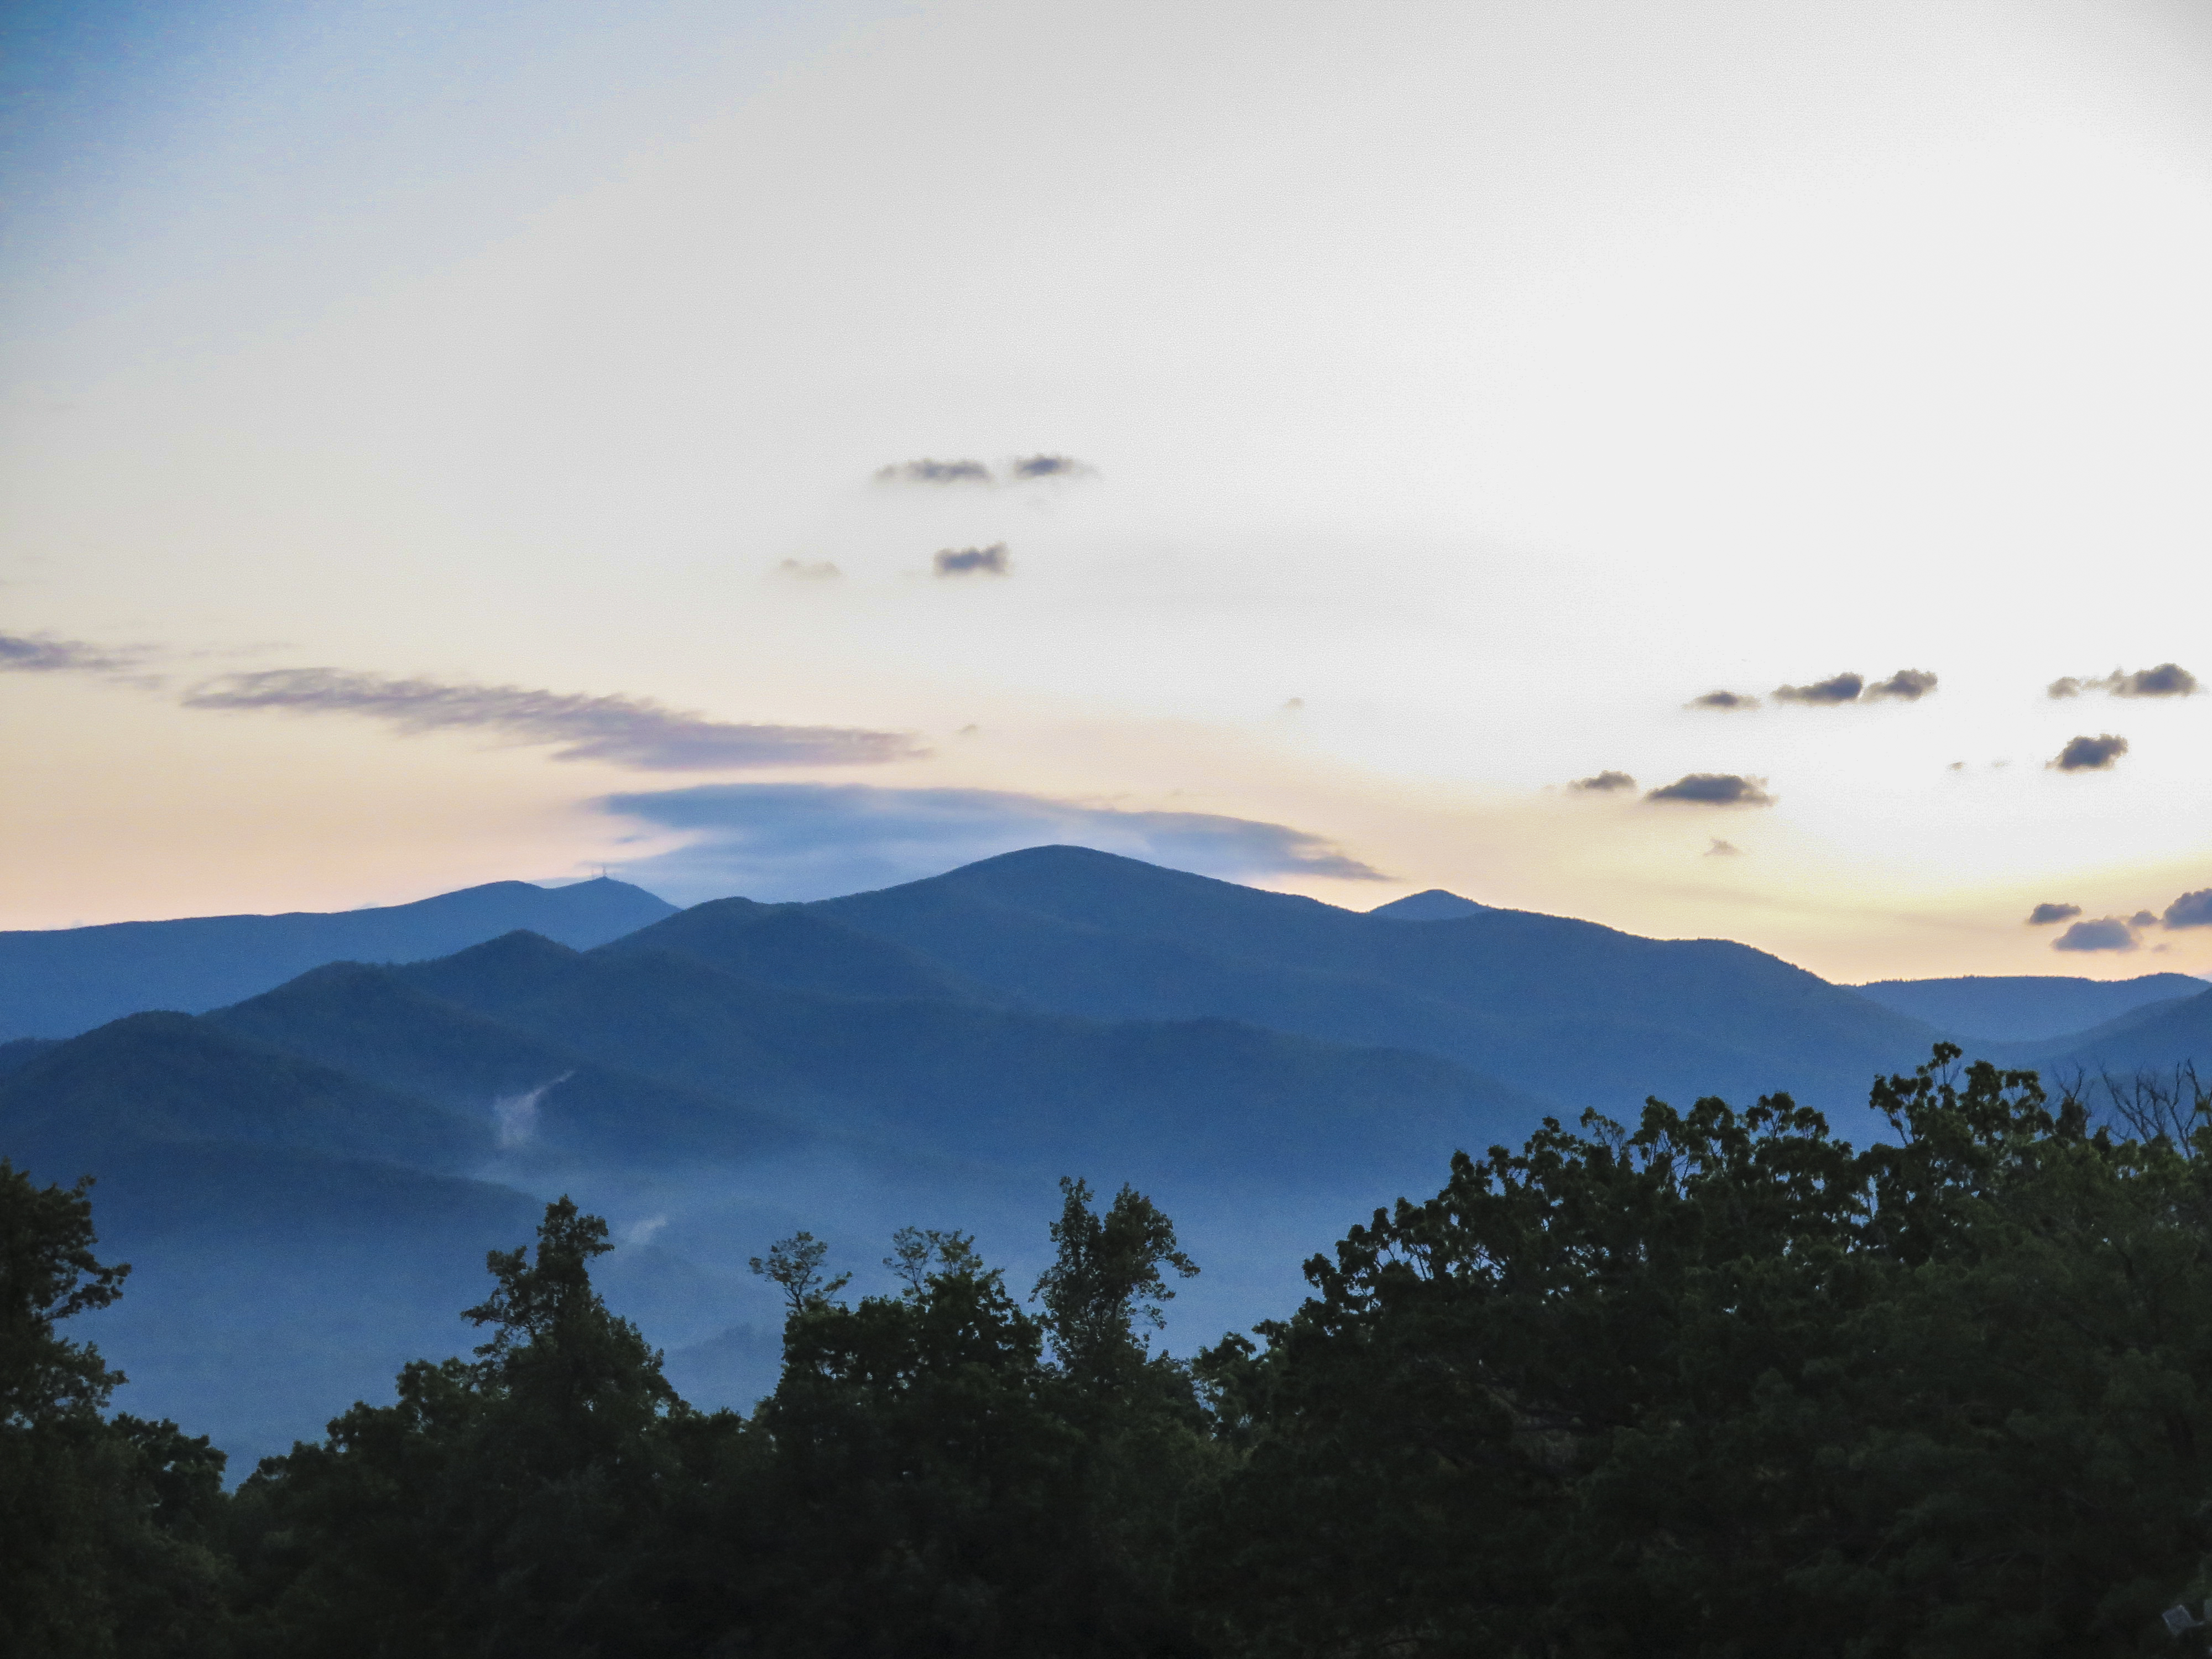 Viewfrom the Blue Ridge Assembly venue for theLight of the Path retreats. (Photographer unknown)